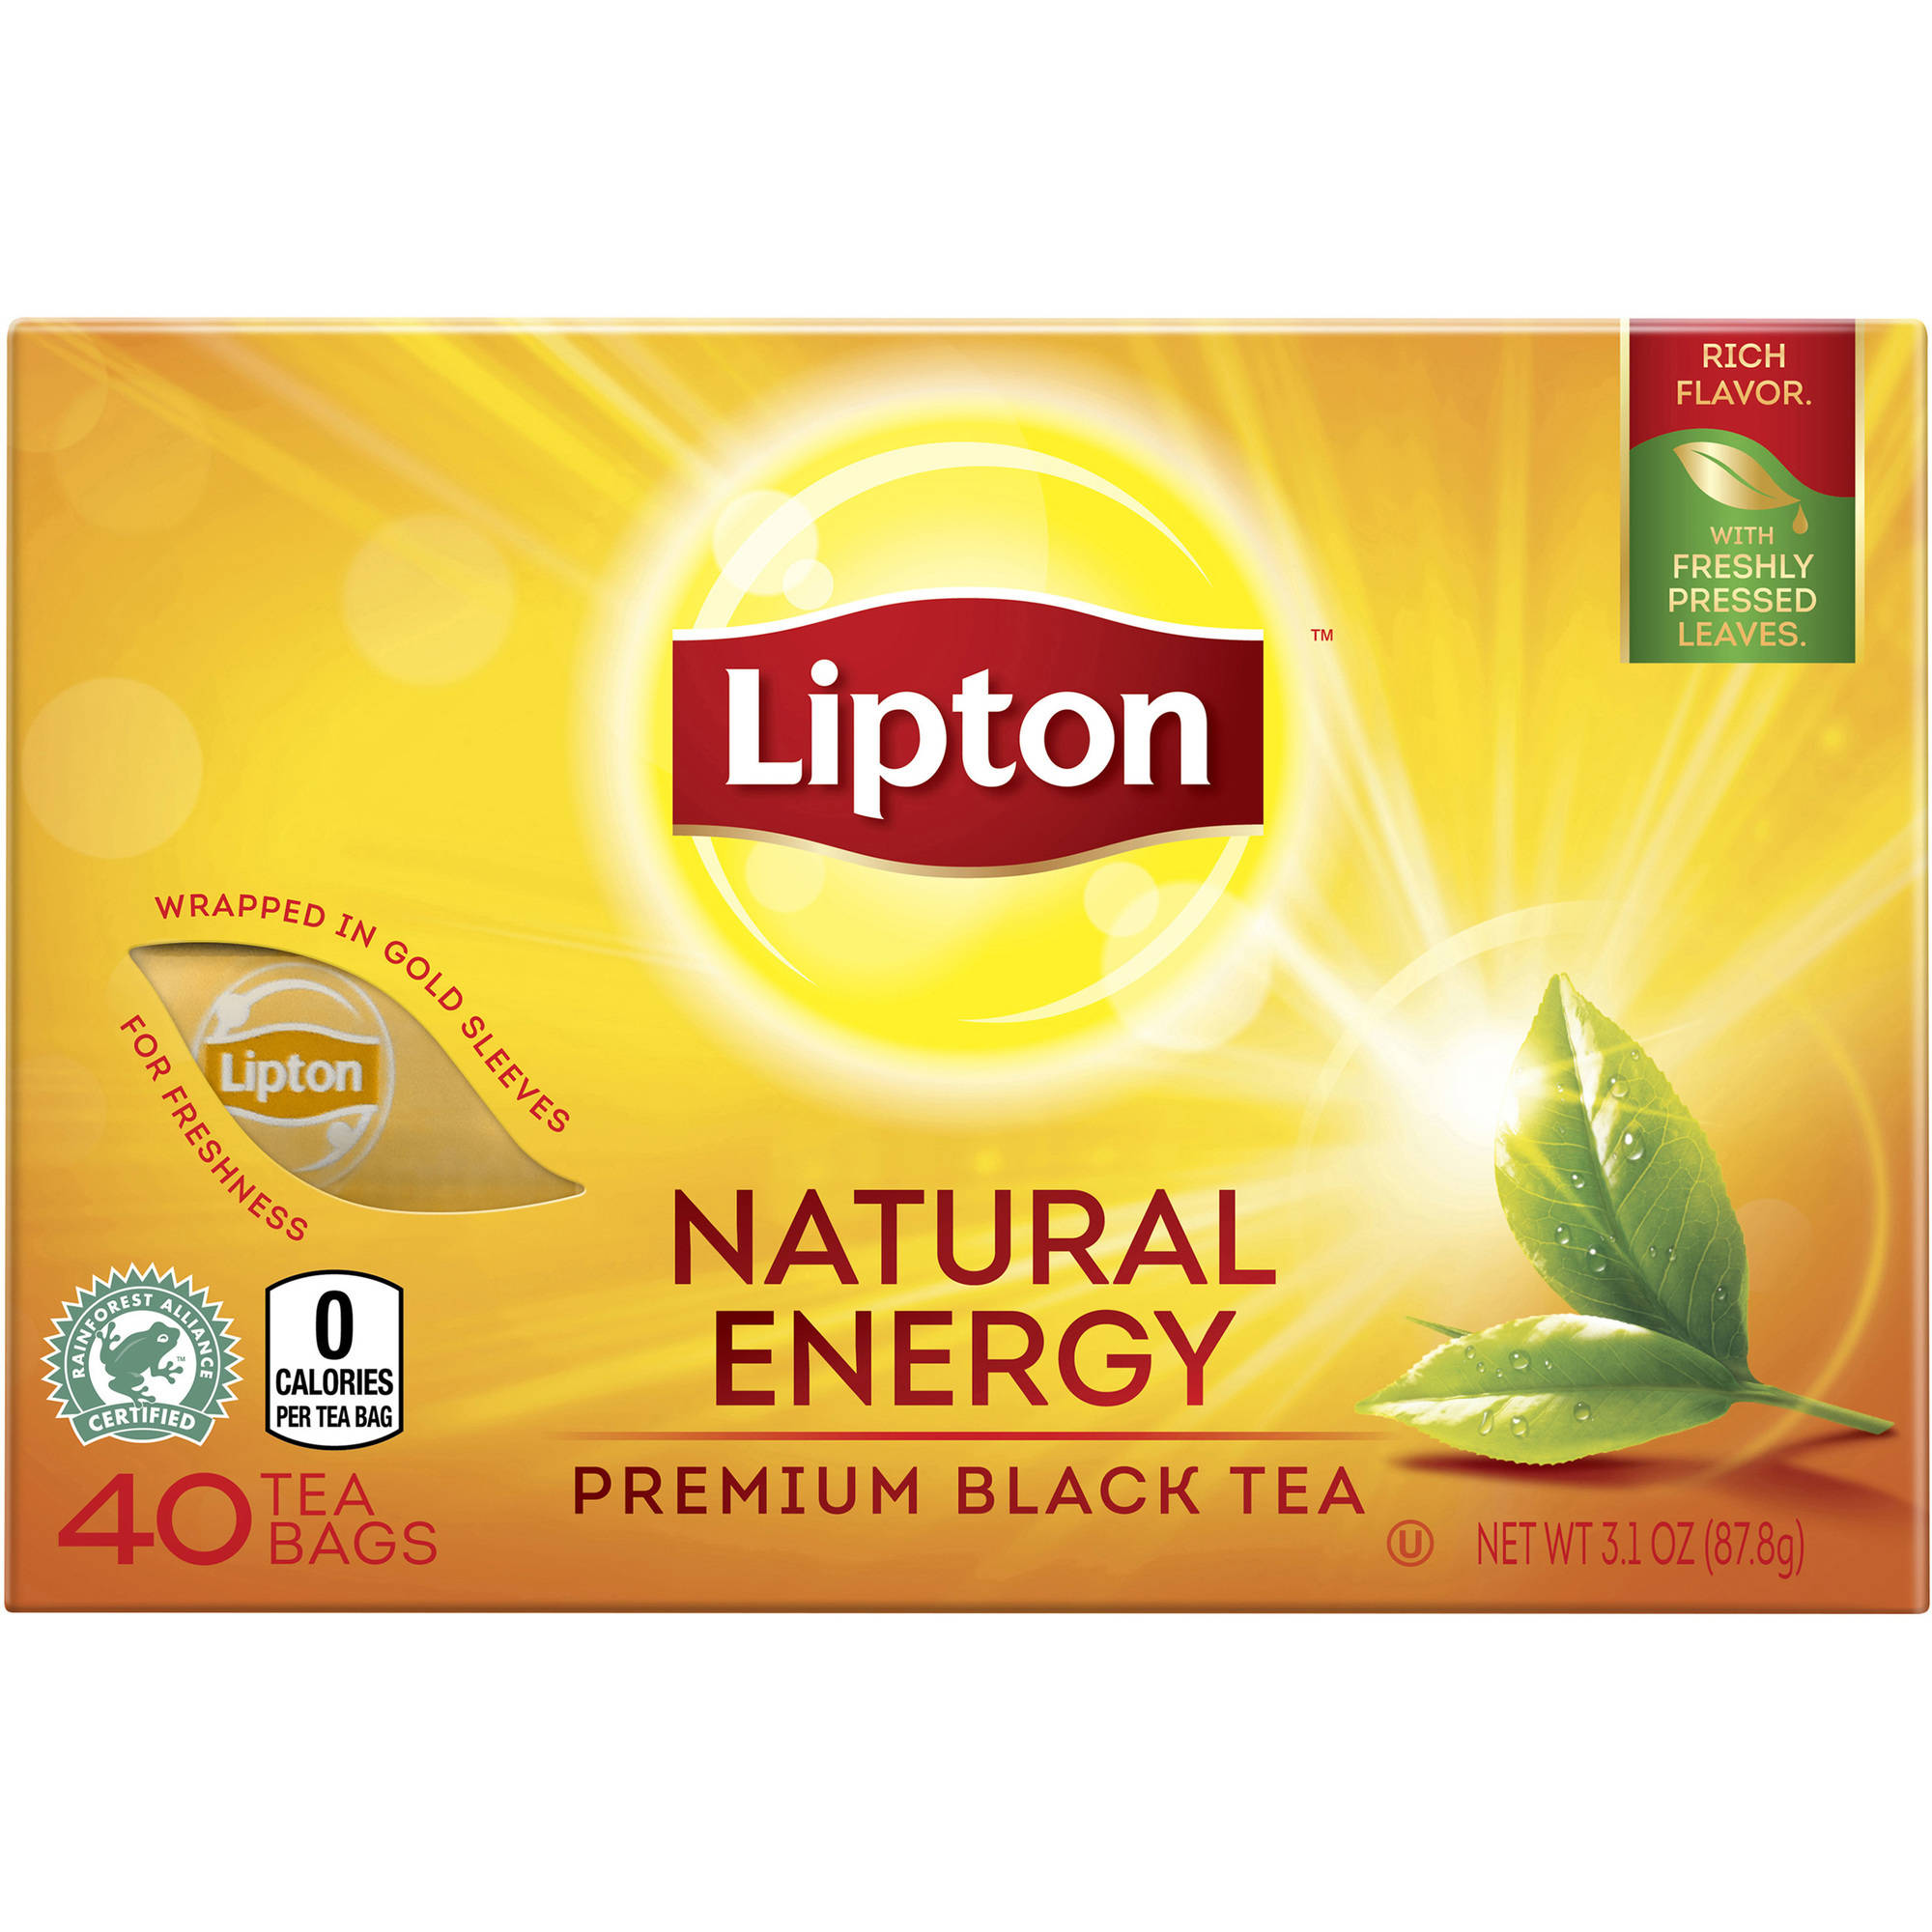 Lipton Premium Black Tea Bags Natural Energy, 40 ct